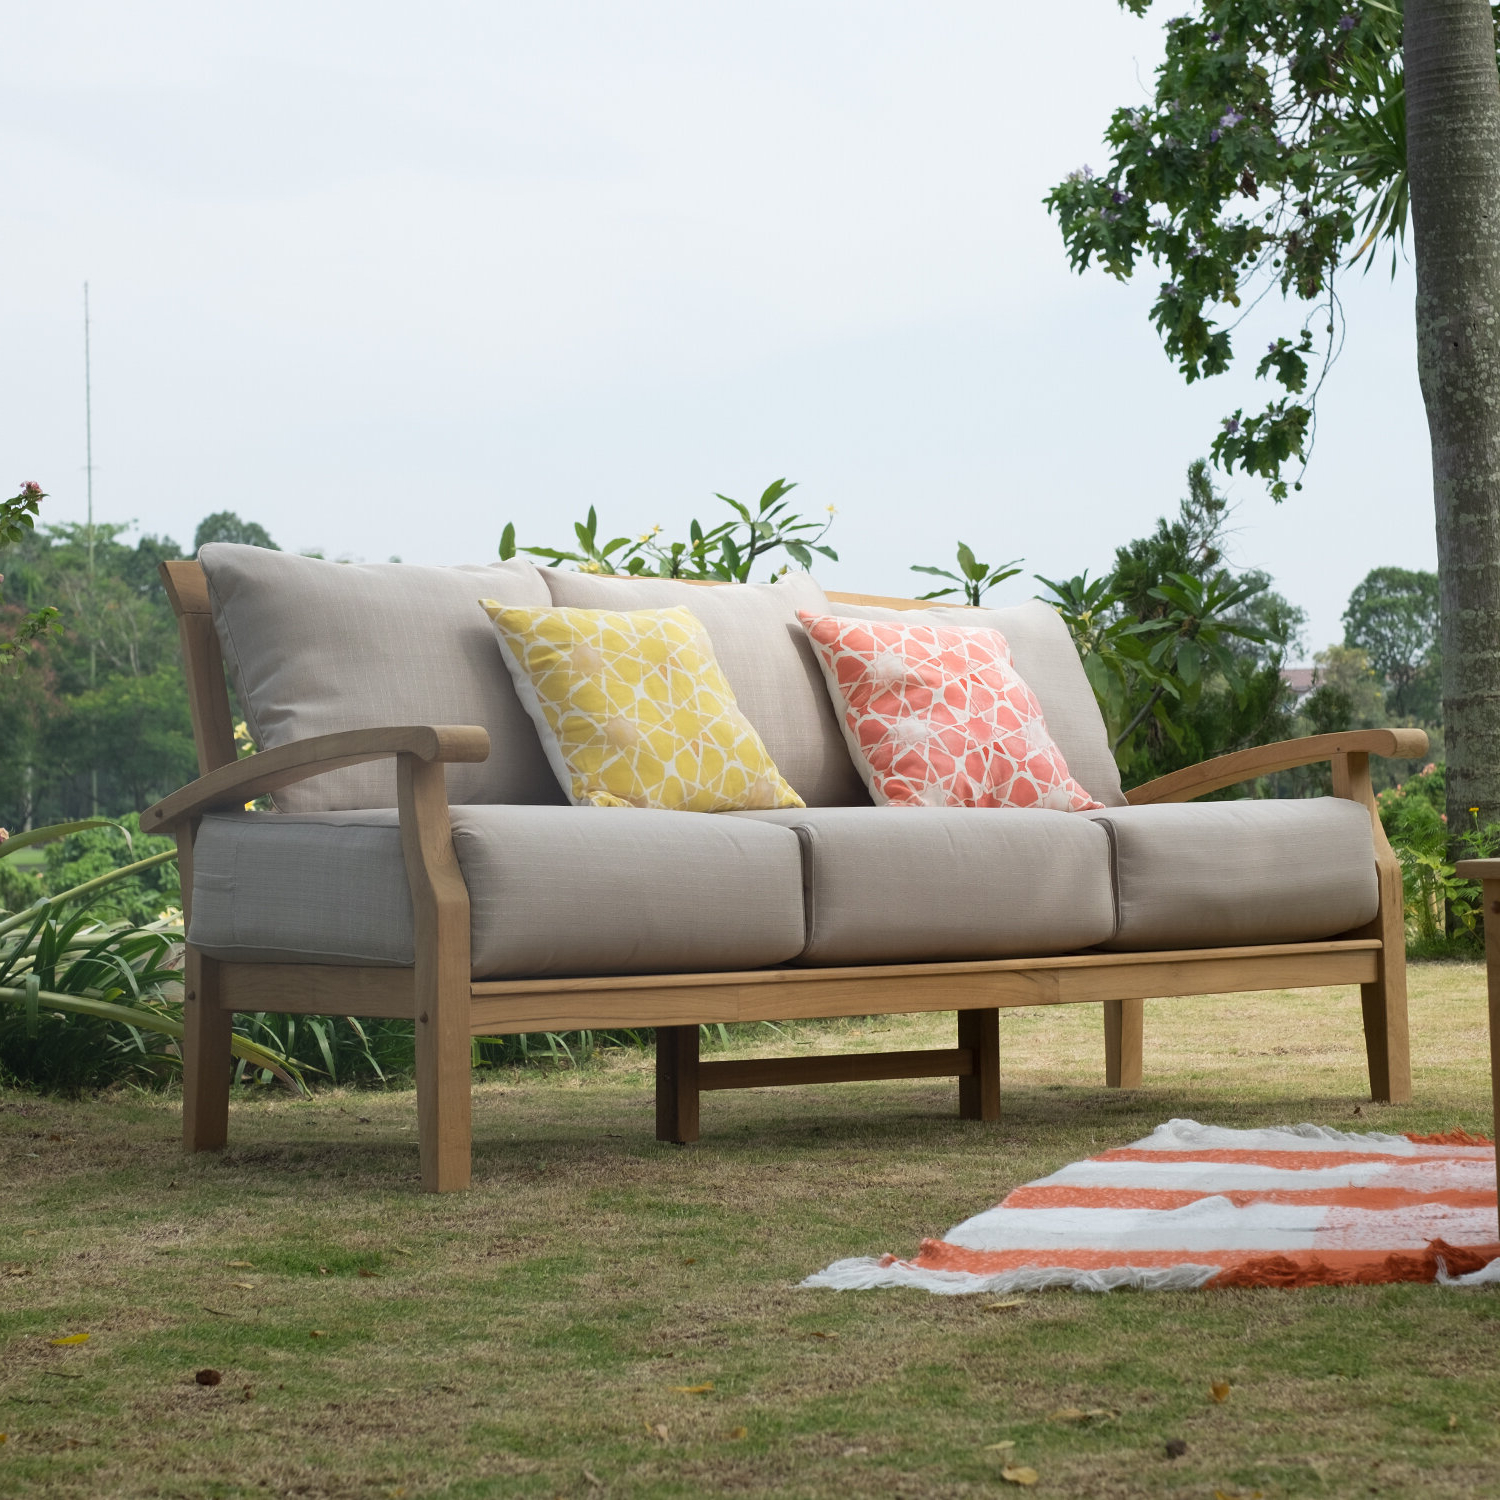 Popular Calila Teak Loveseats With Cushion For Summerton Teak Patio Sofa With Cushions (View 15 of 20)